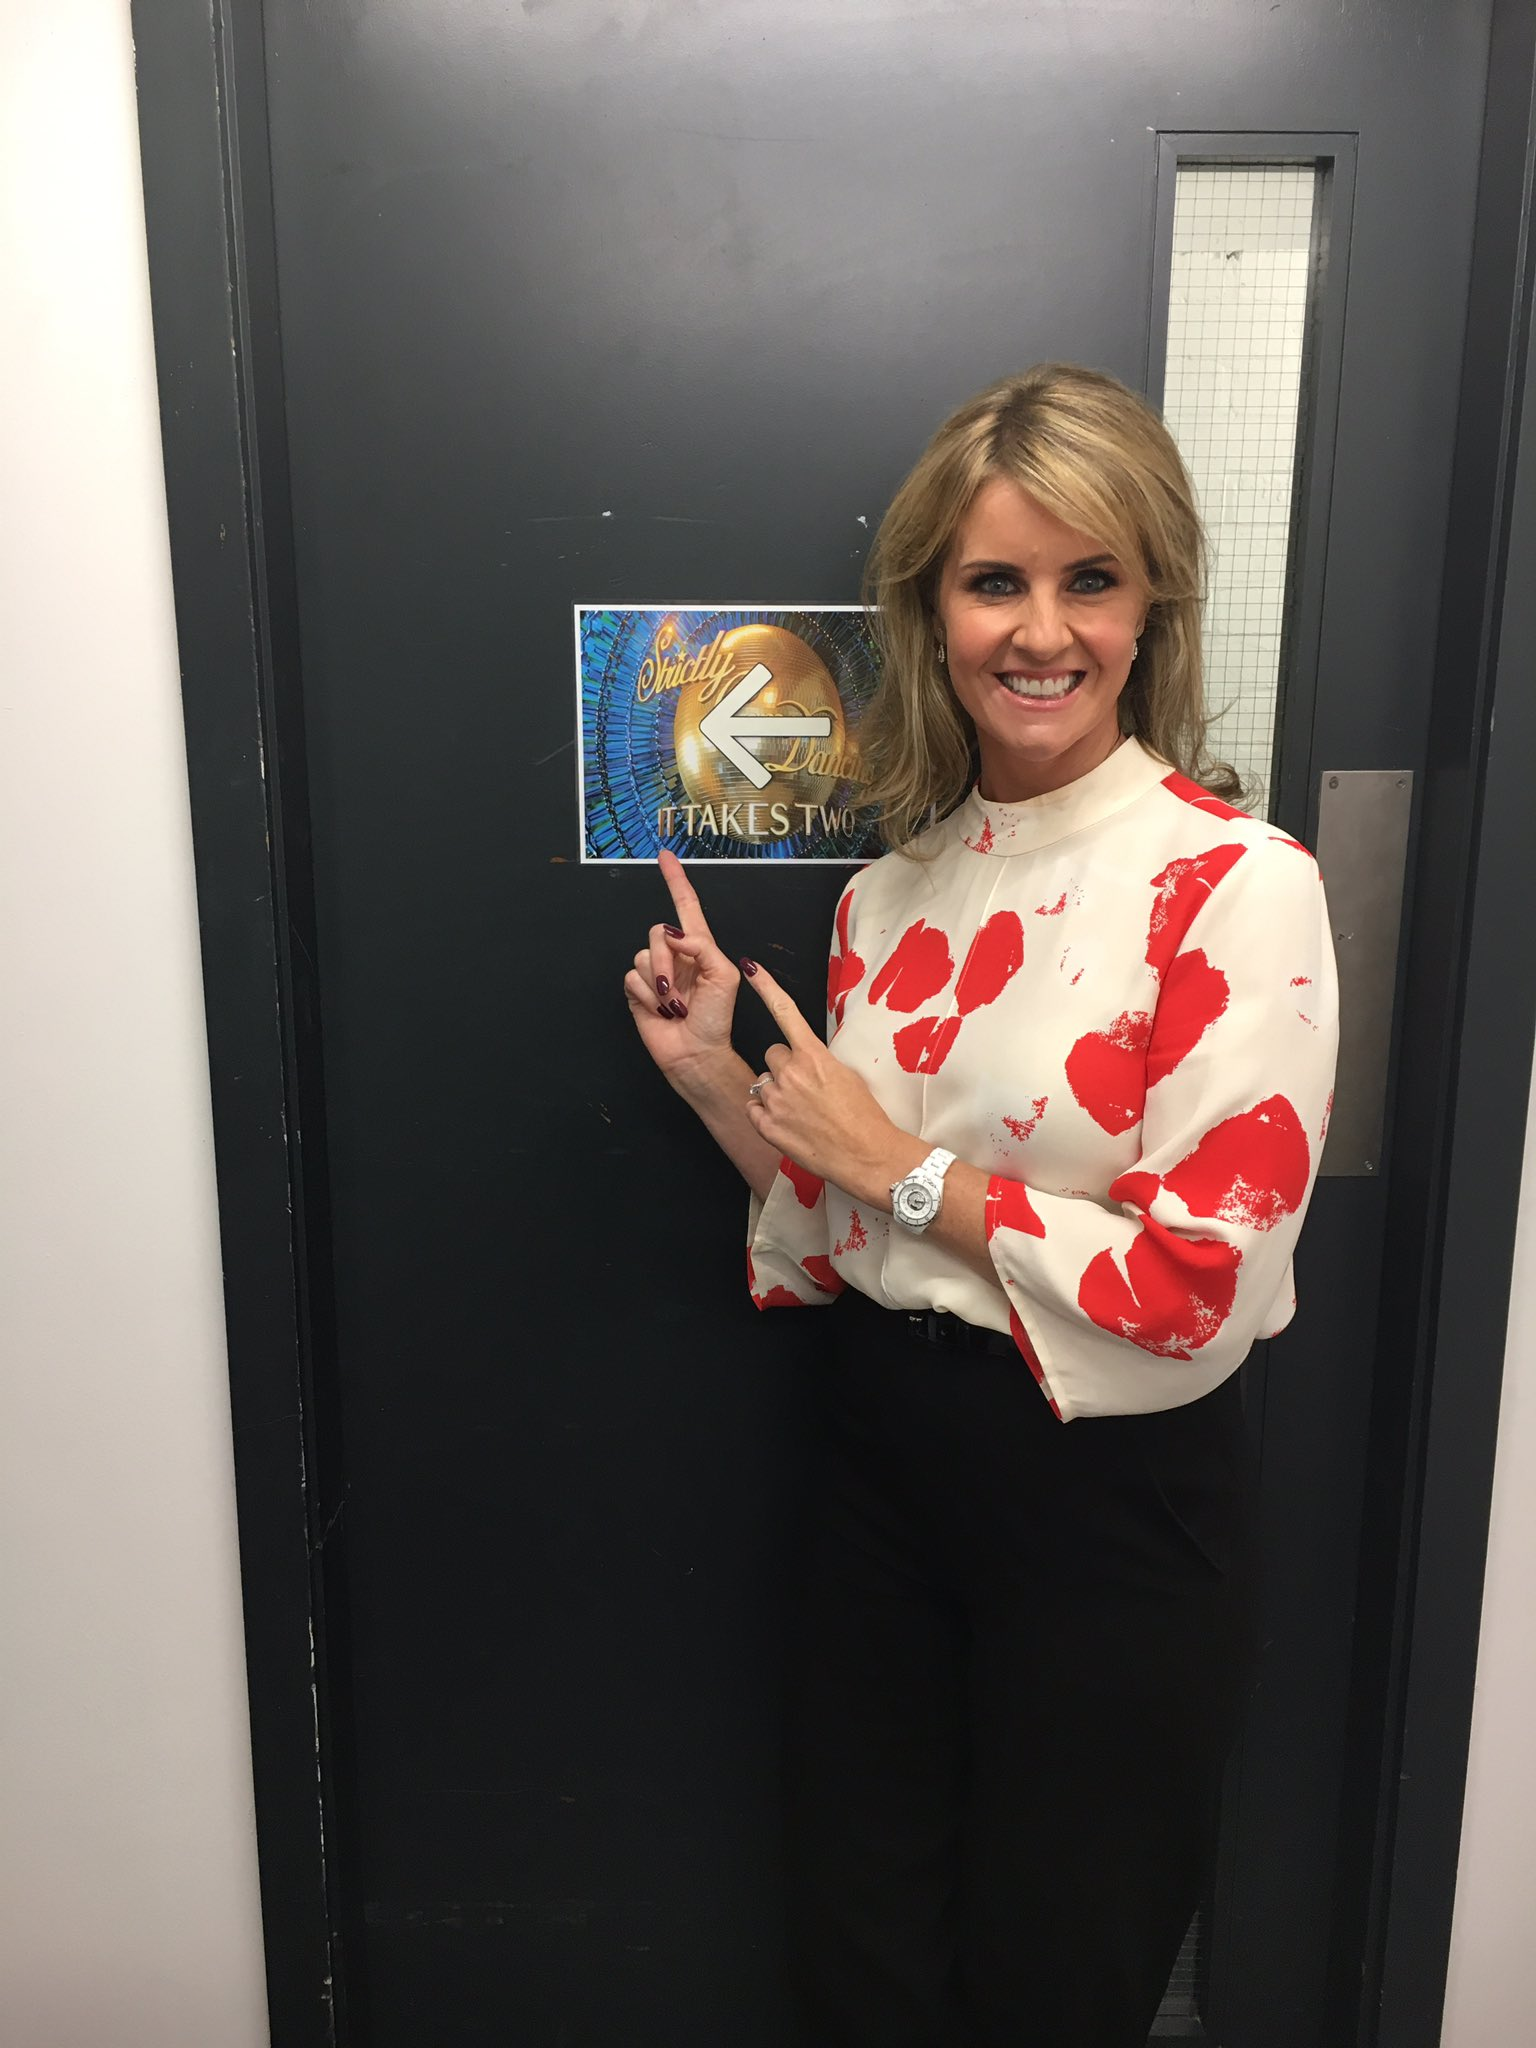 Watch me tonight on #ItTakesTwo at 6.30pm with @ZoeTheBall https://t.co/RJE76nsO5H